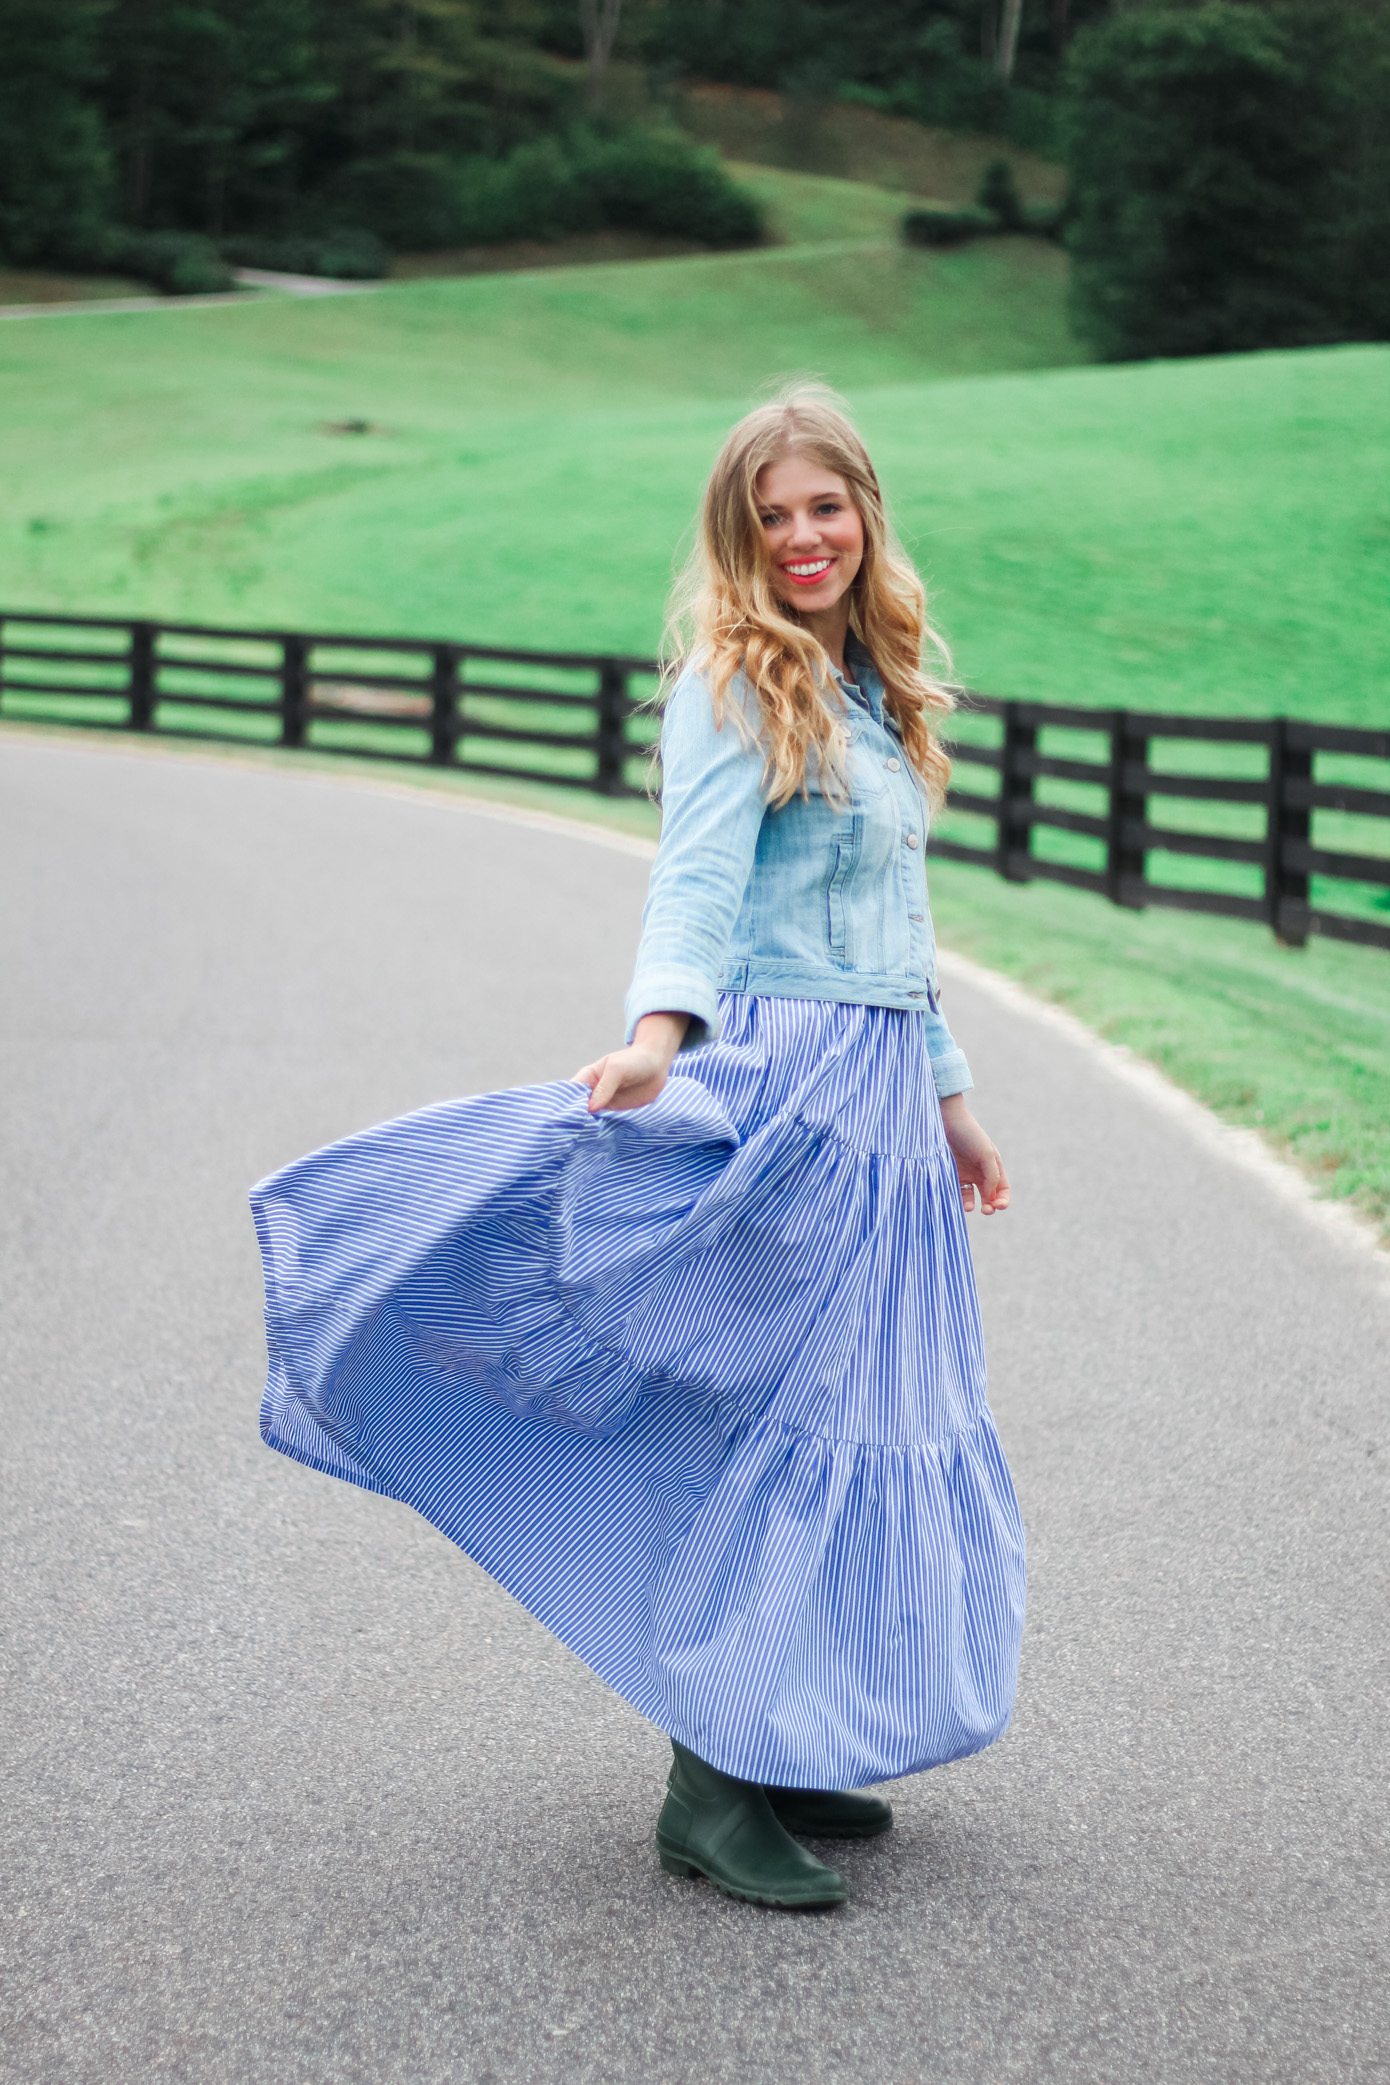 Fall Maxi Dress | Maxi Dress with Rain Boots | Louella Reese Life & Style Blog